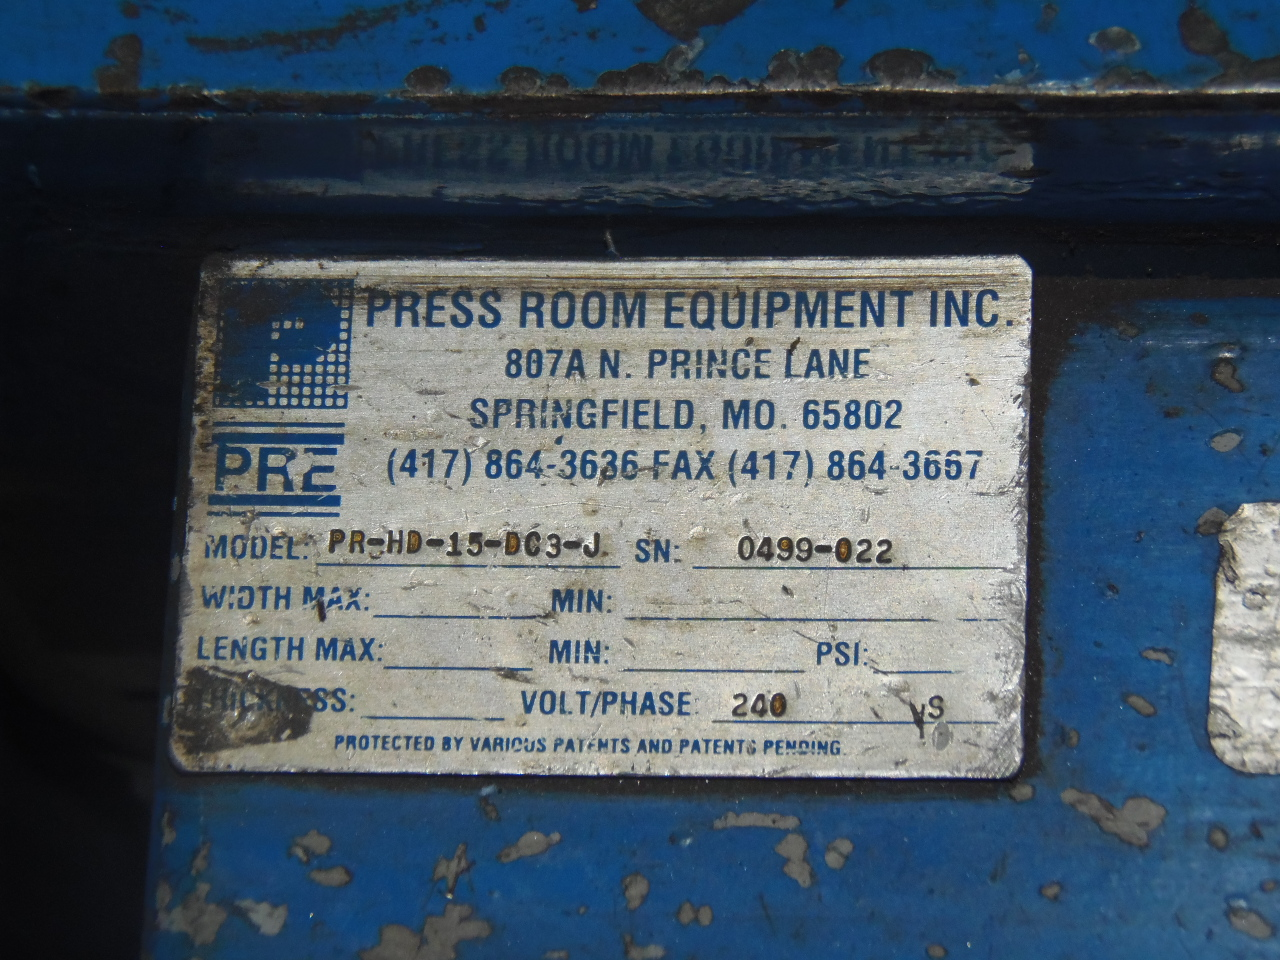 "15"" X 180"" 11 ROLL PRE STRAIGHTENER, MODEL PRIMO PRHD-15-DC3-J, NEW 1999"